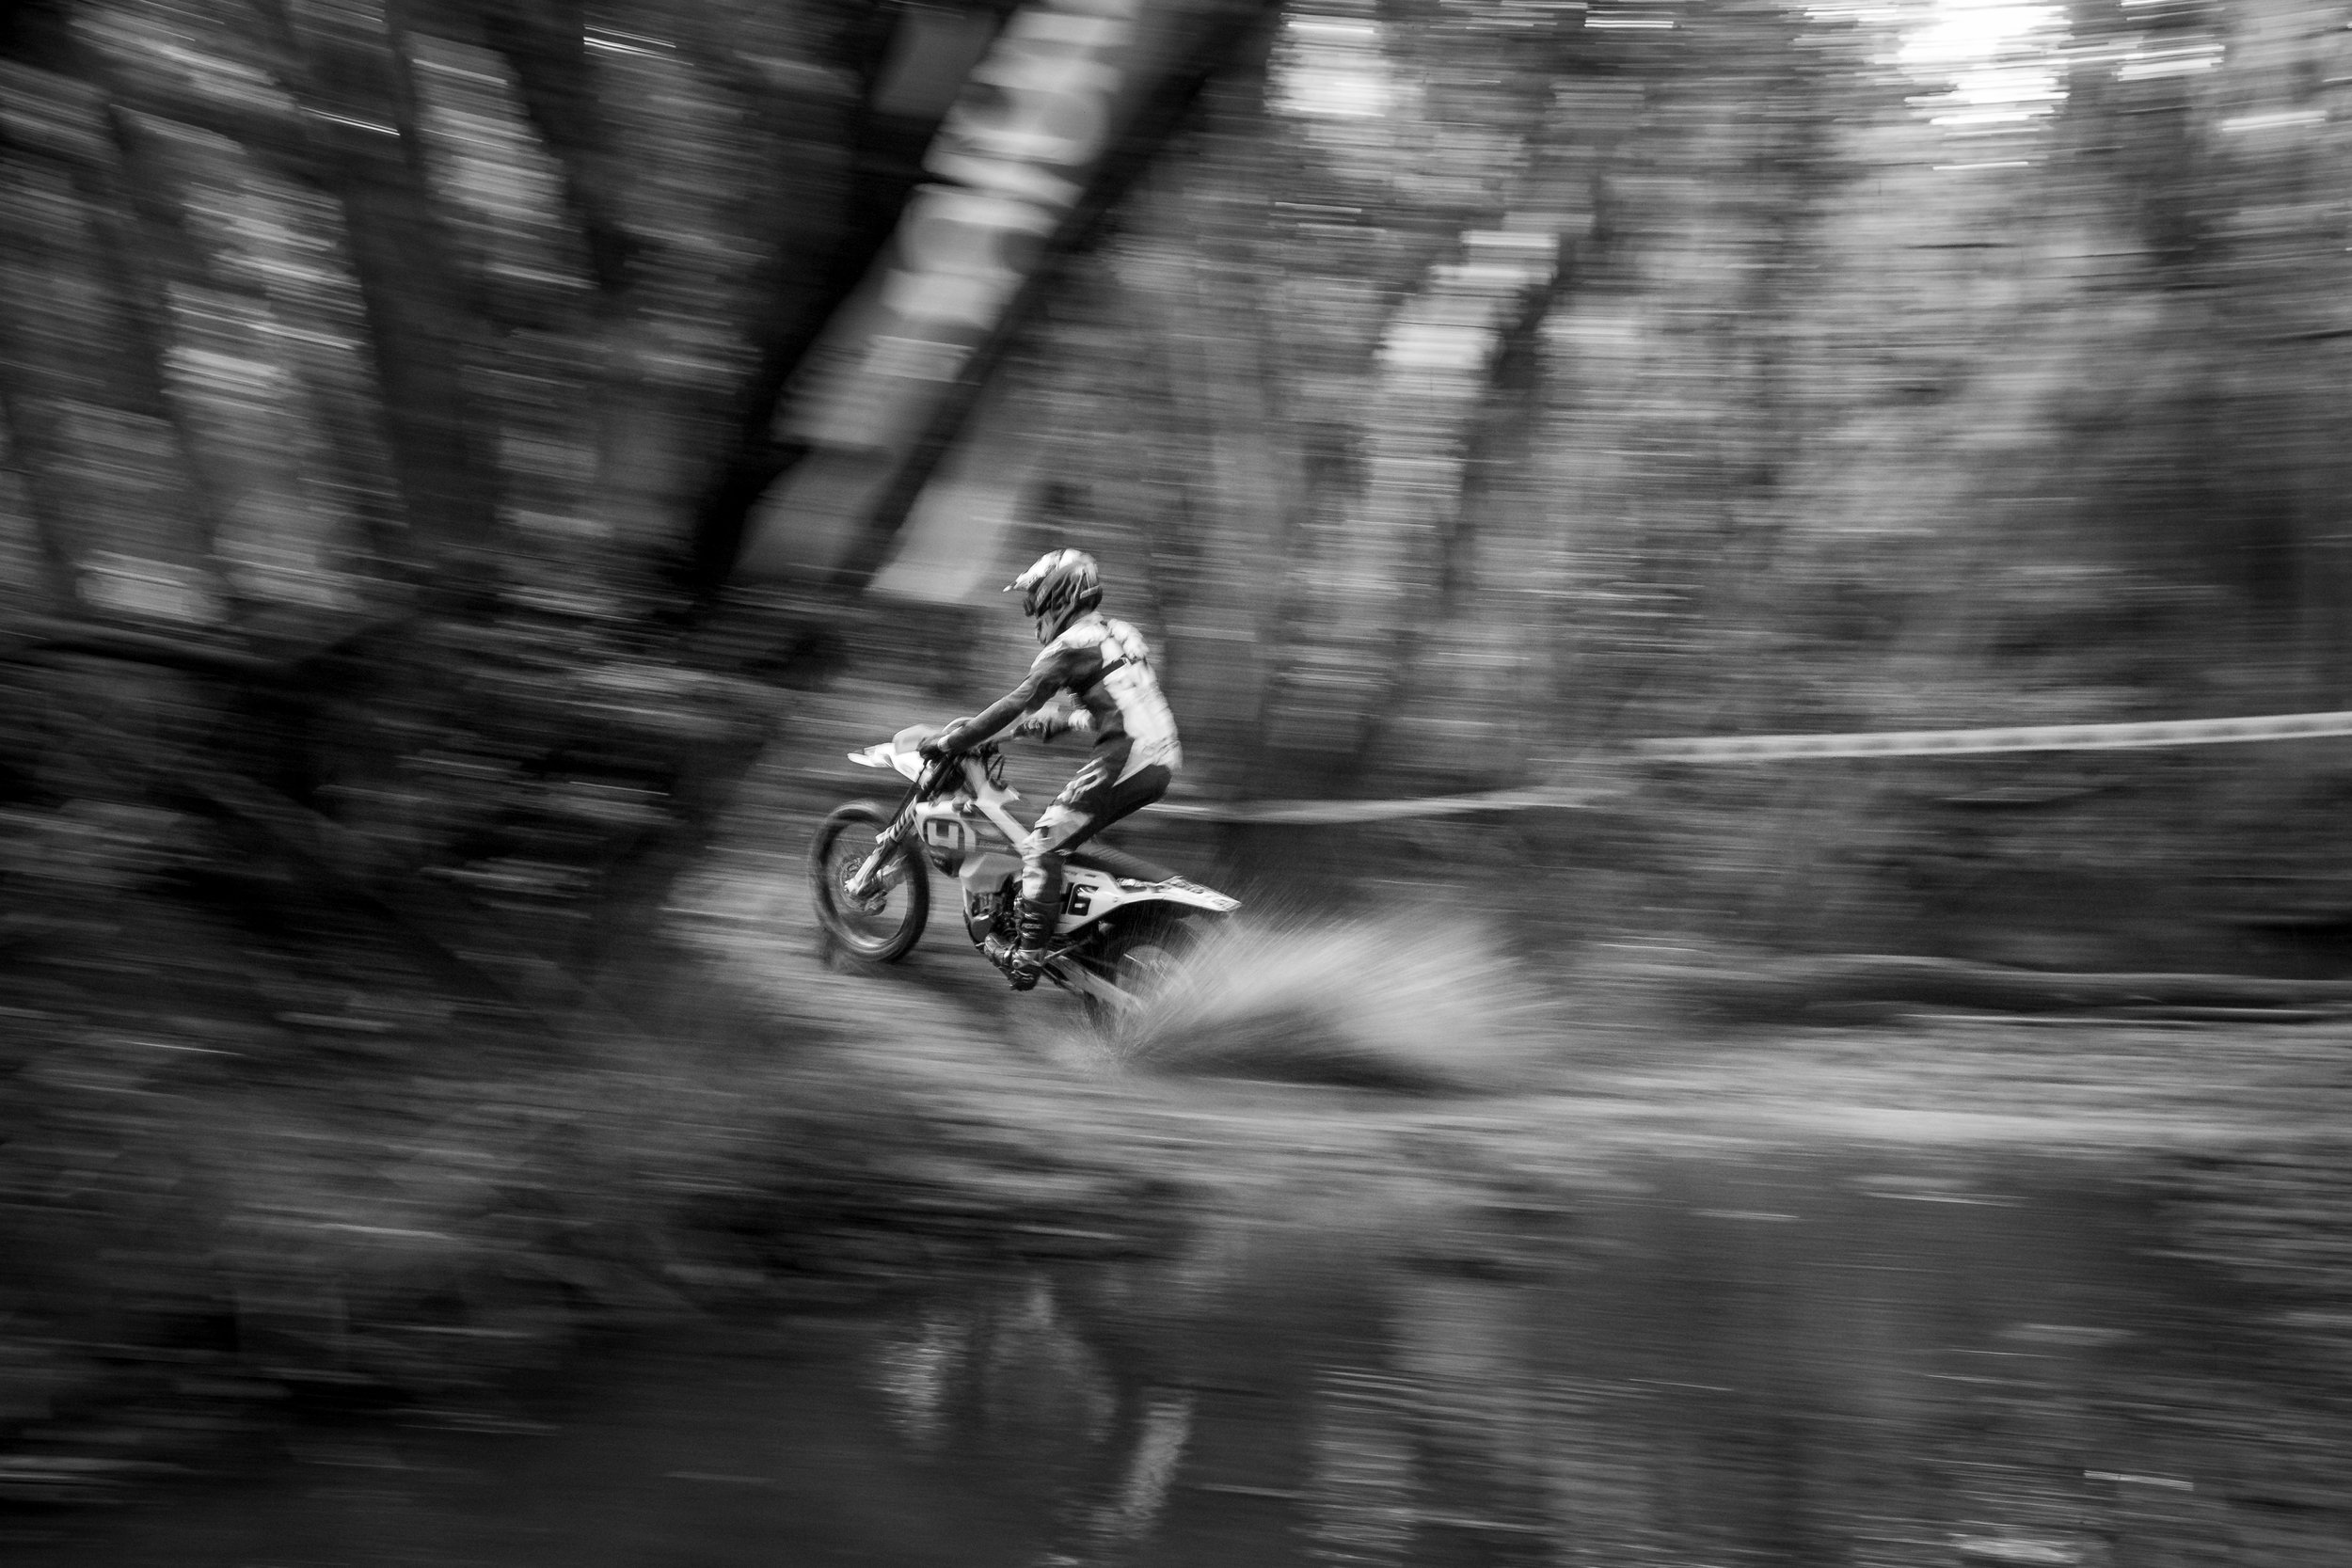 Lachlan Stanford #46  blasting through a creek at the last  Transmoto  of the year in Stroud, NSW